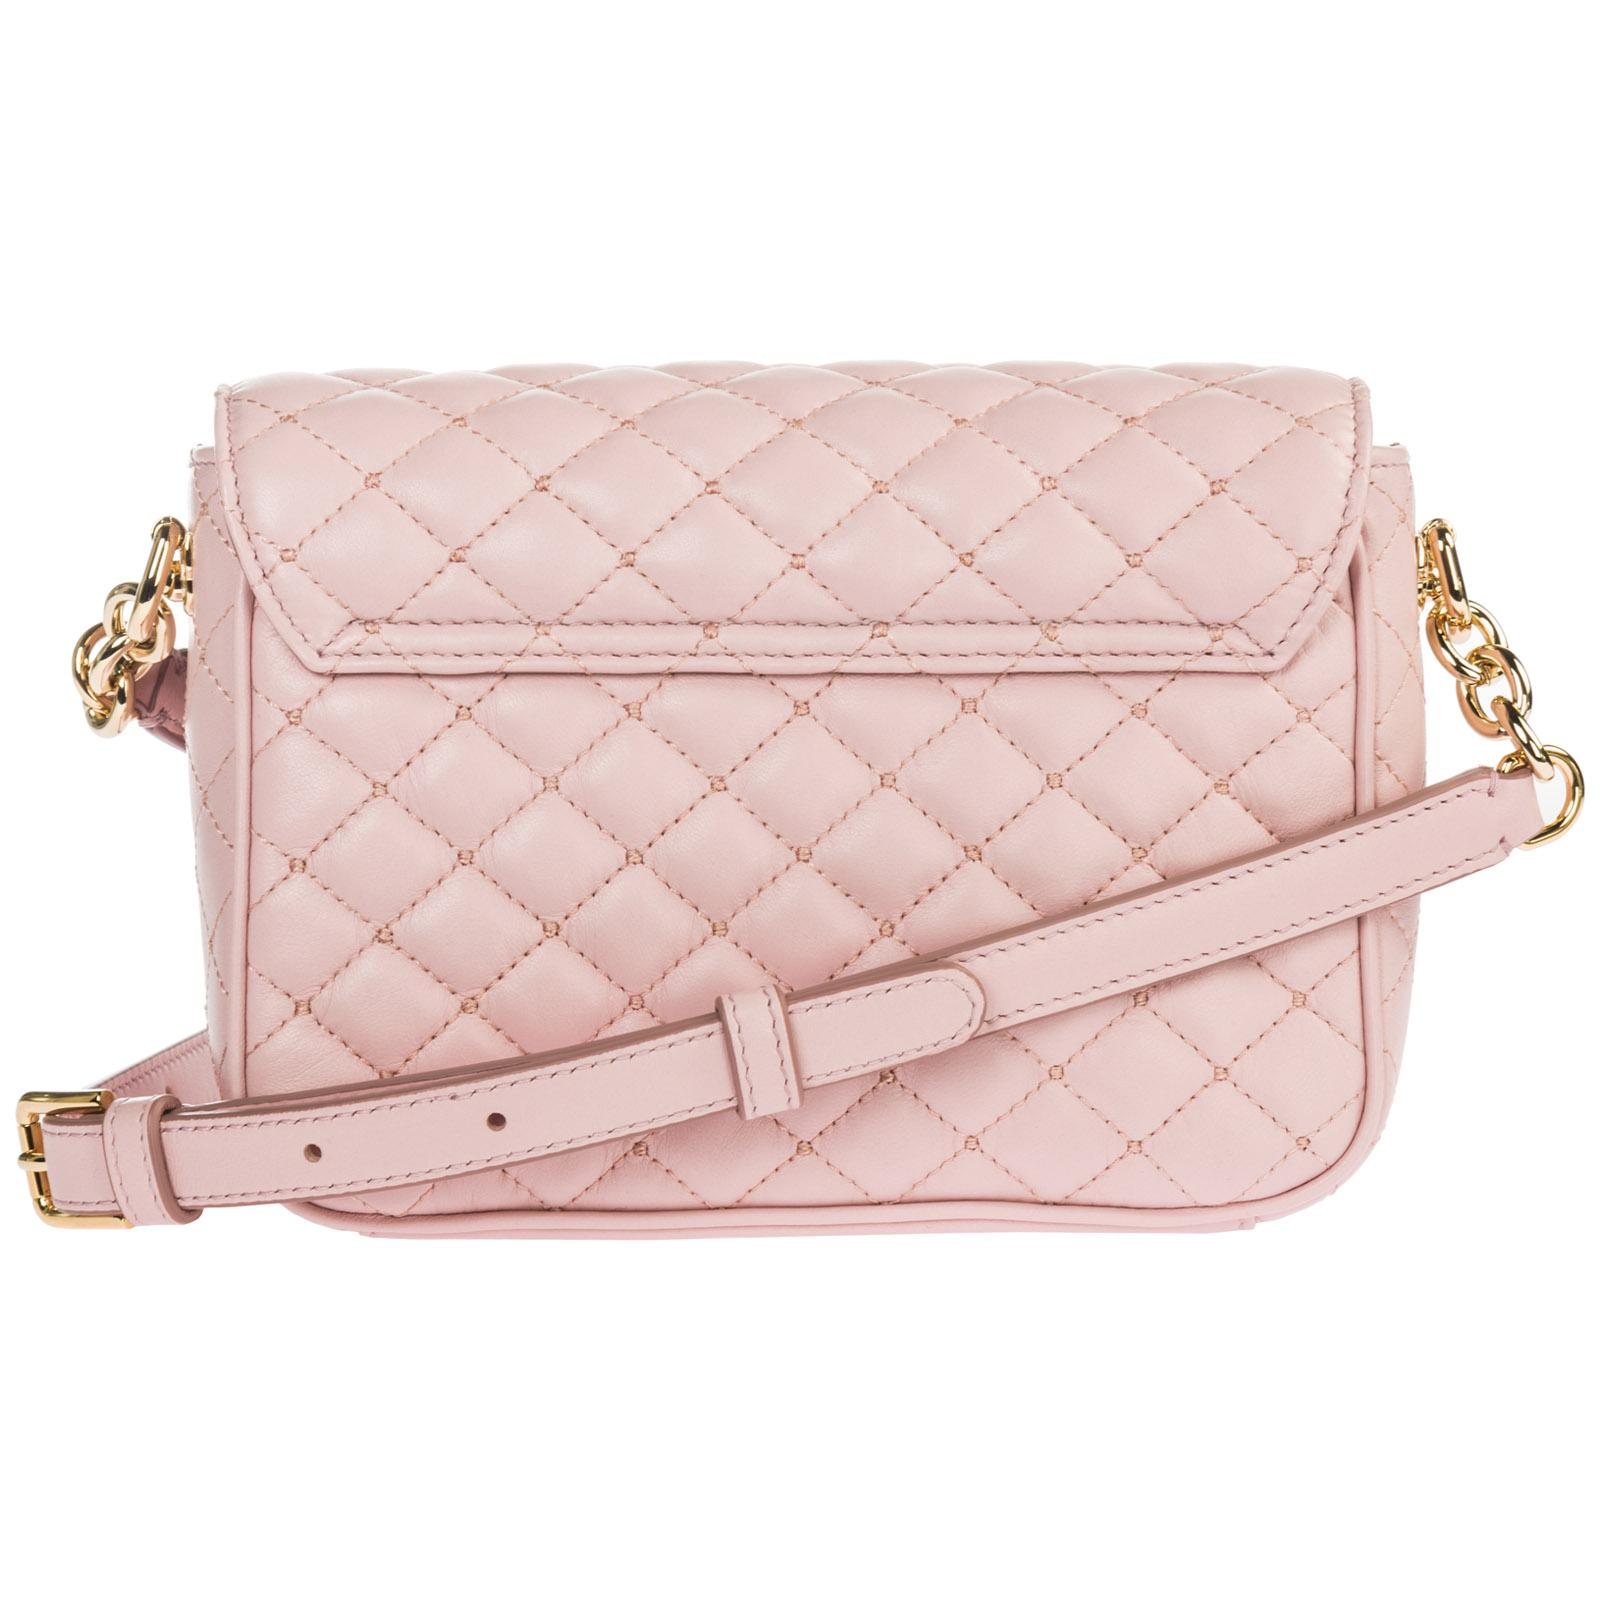 40c7d5ff68a0 Dolce   Gabbana - Pink Leather Cross-body Messenger Shoulder Bag Dg  Millennials - Lyst. View fullscreen